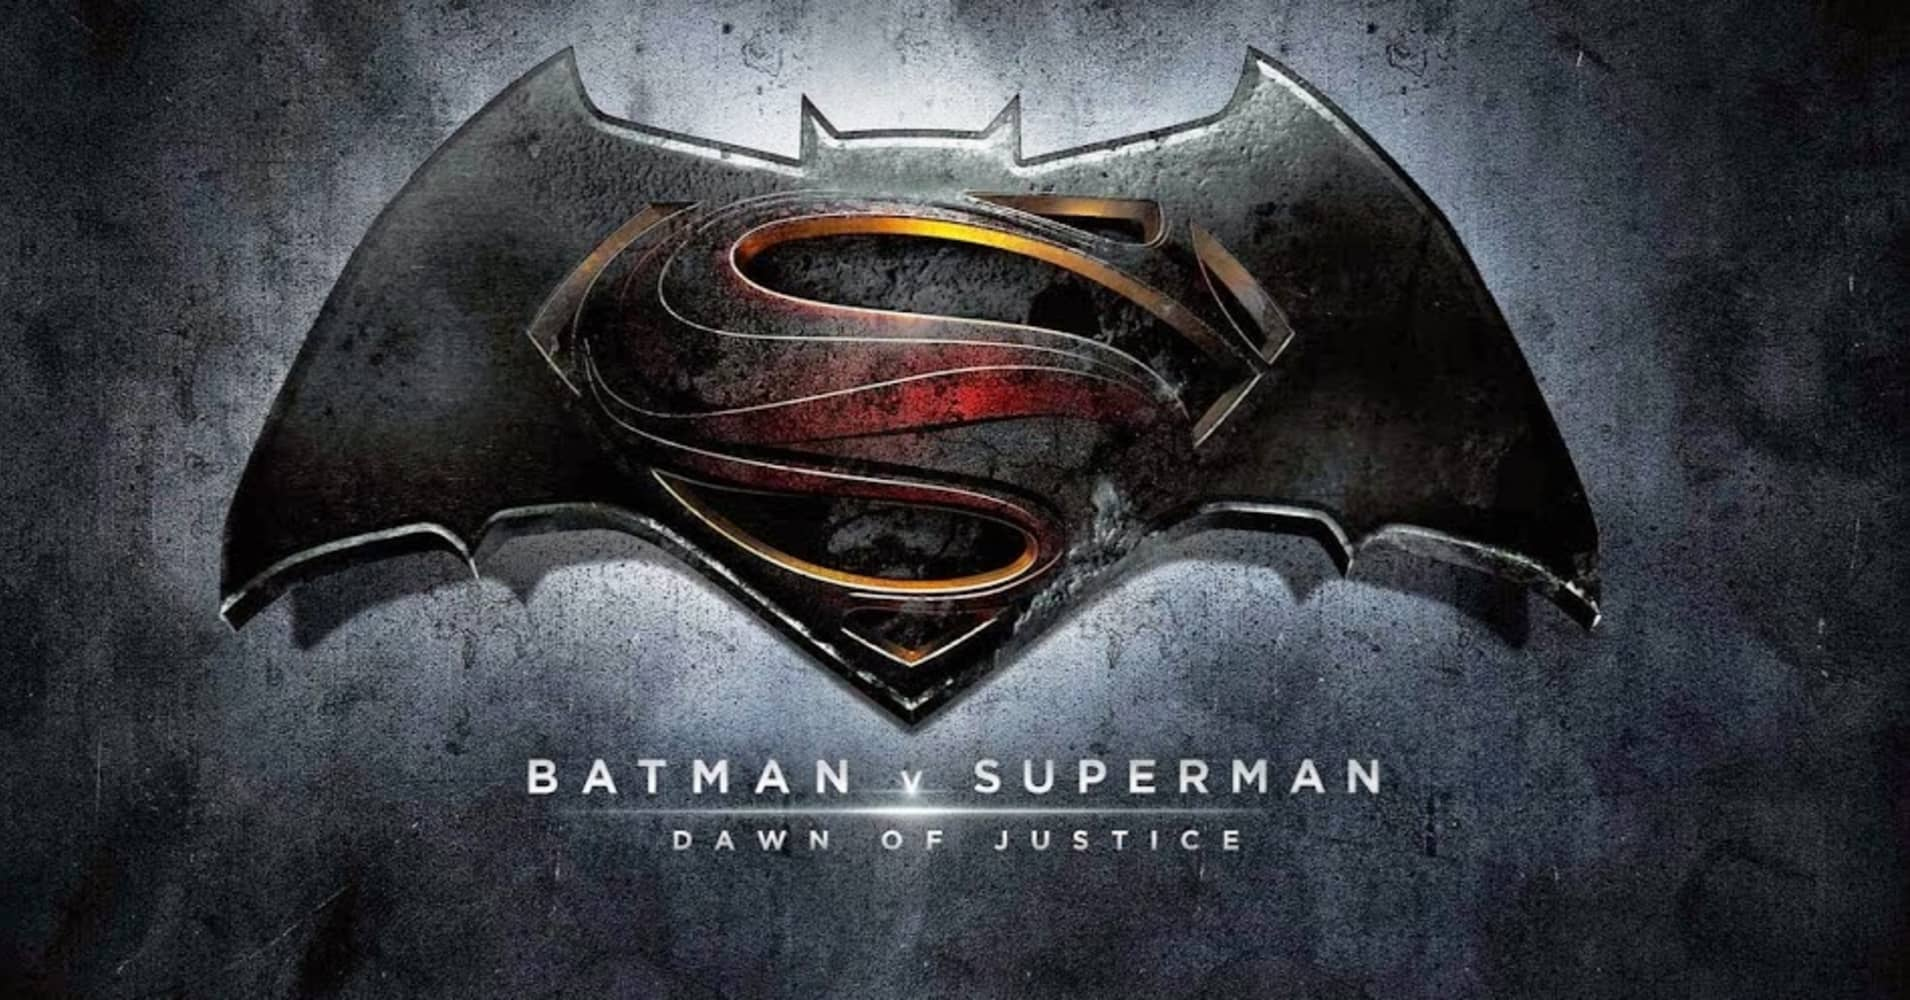 Good Wallpaper Home Screen Superhero - 102597285-Batman-vs-Superman  Graphic_475872.jpeg